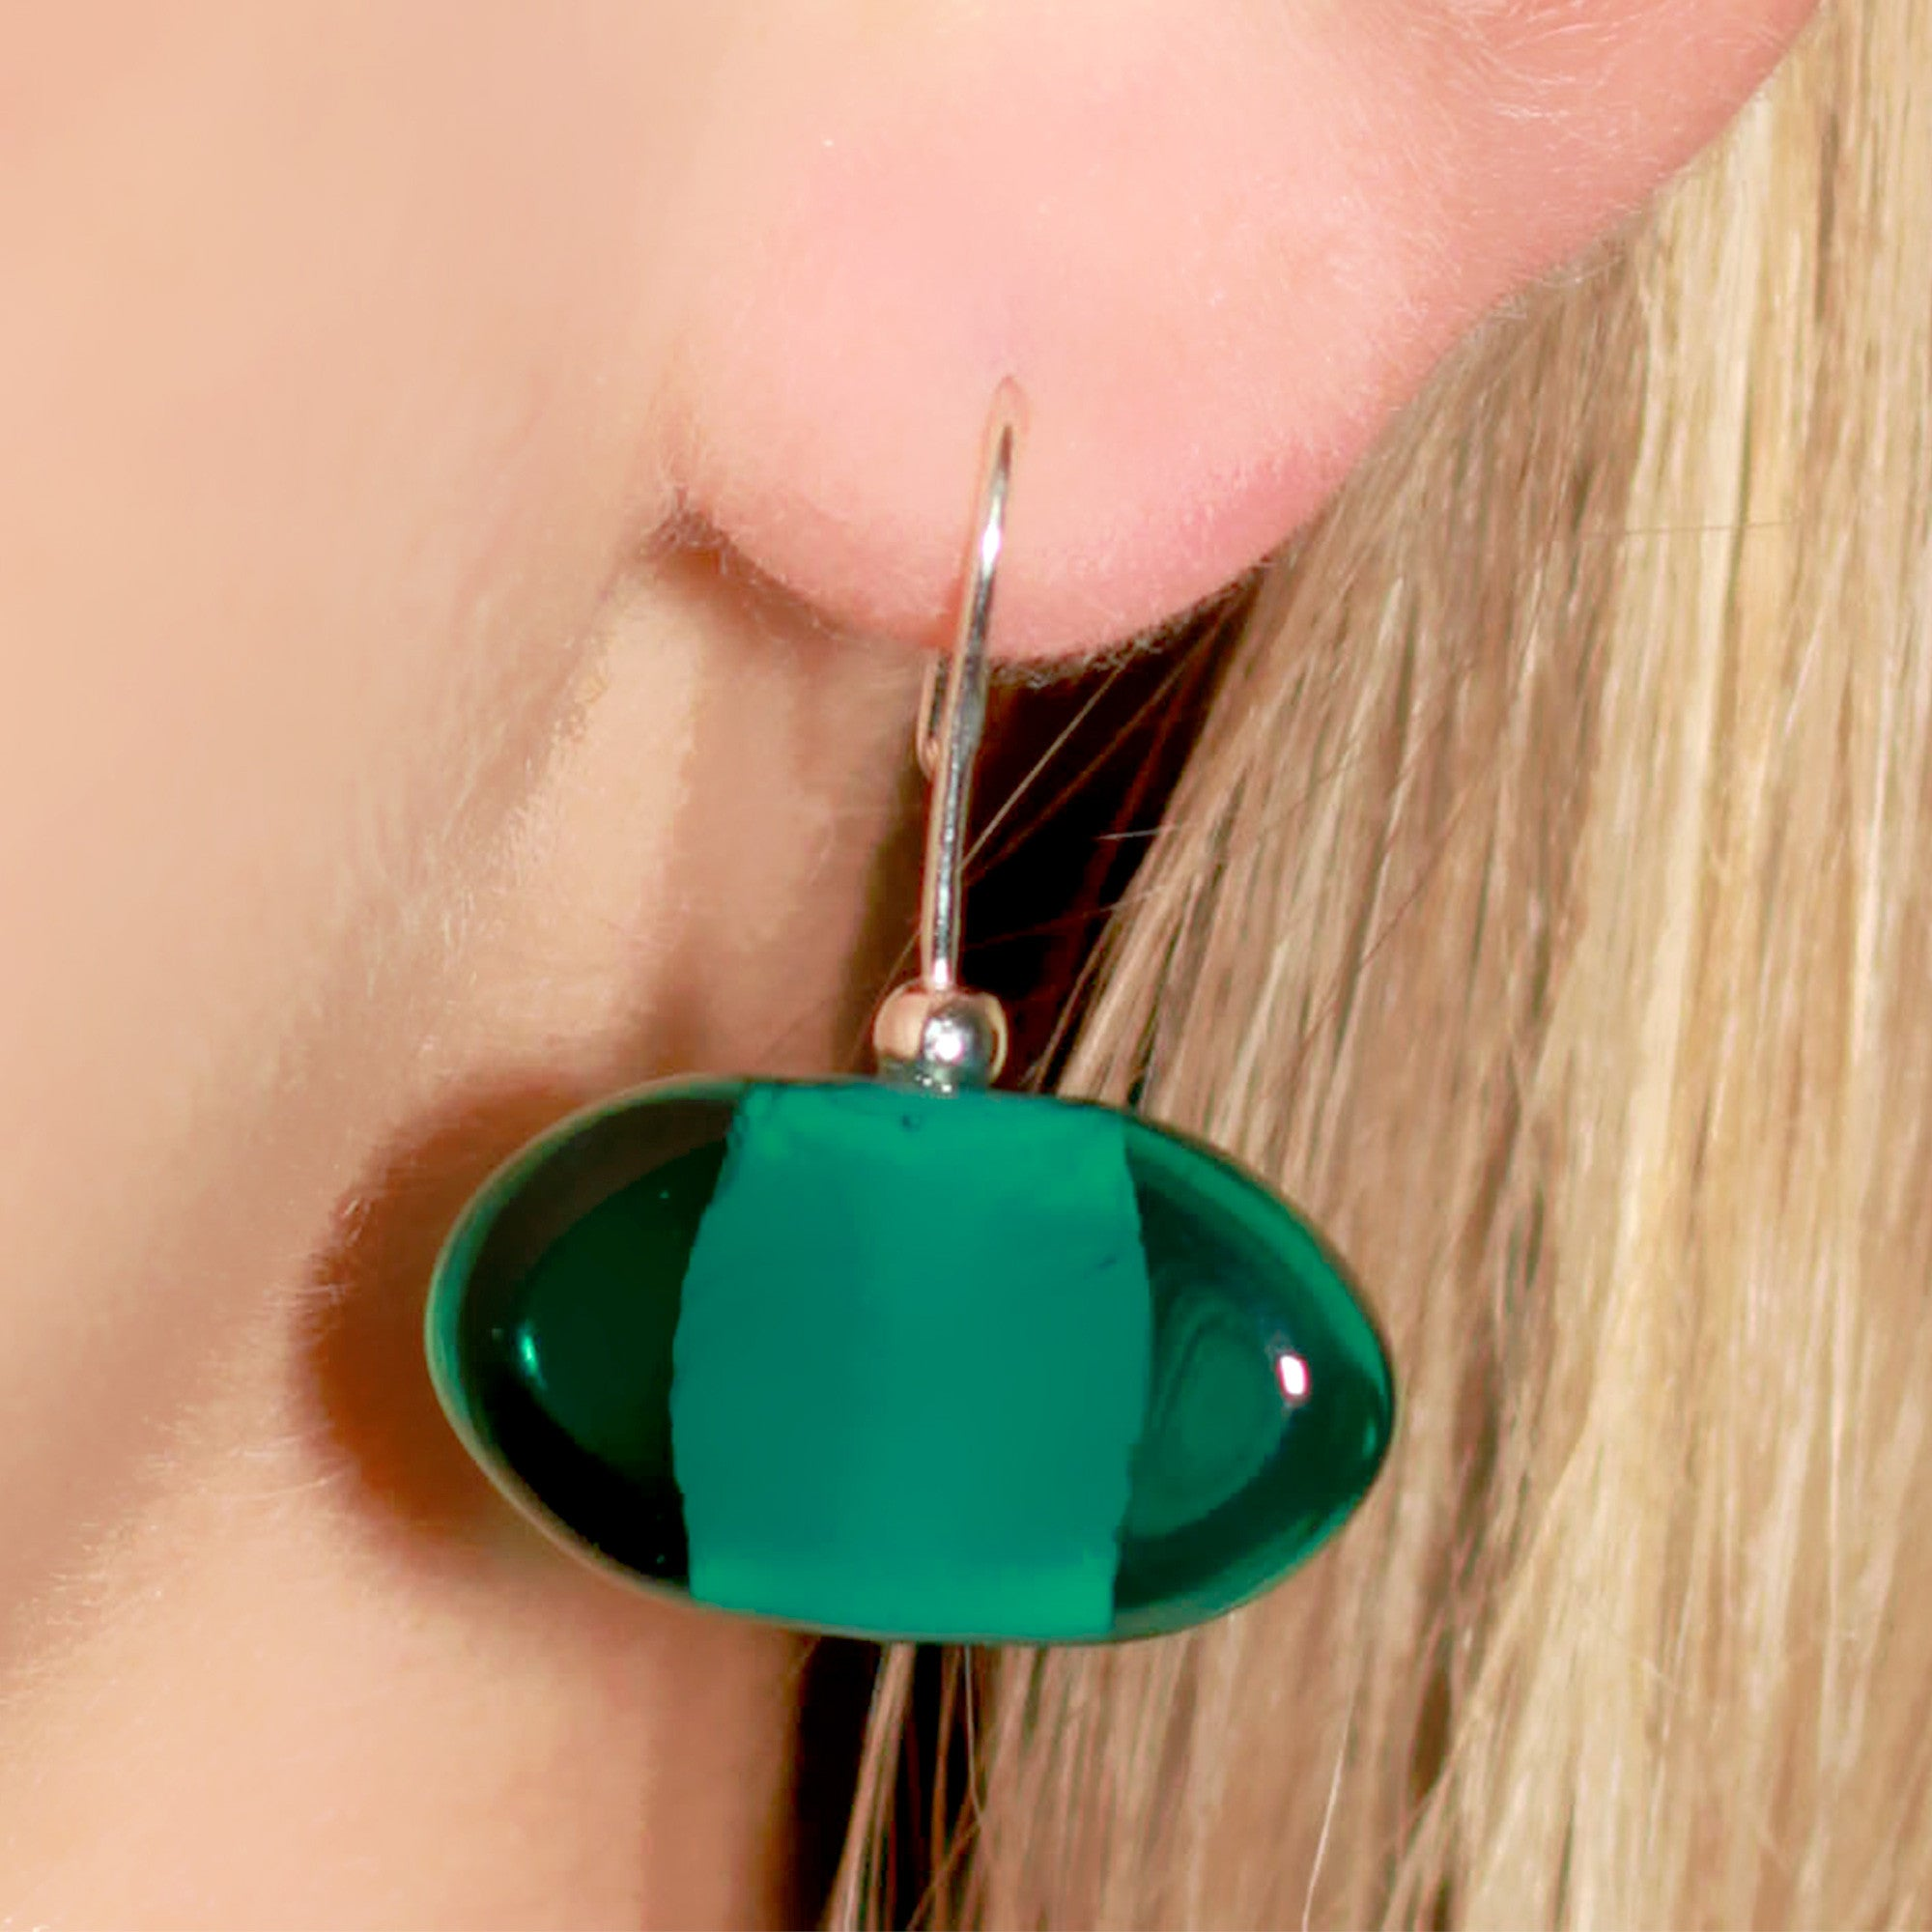 La Foglia D'Oro: Classic Occhio Glass & Silver Earrings - Teal